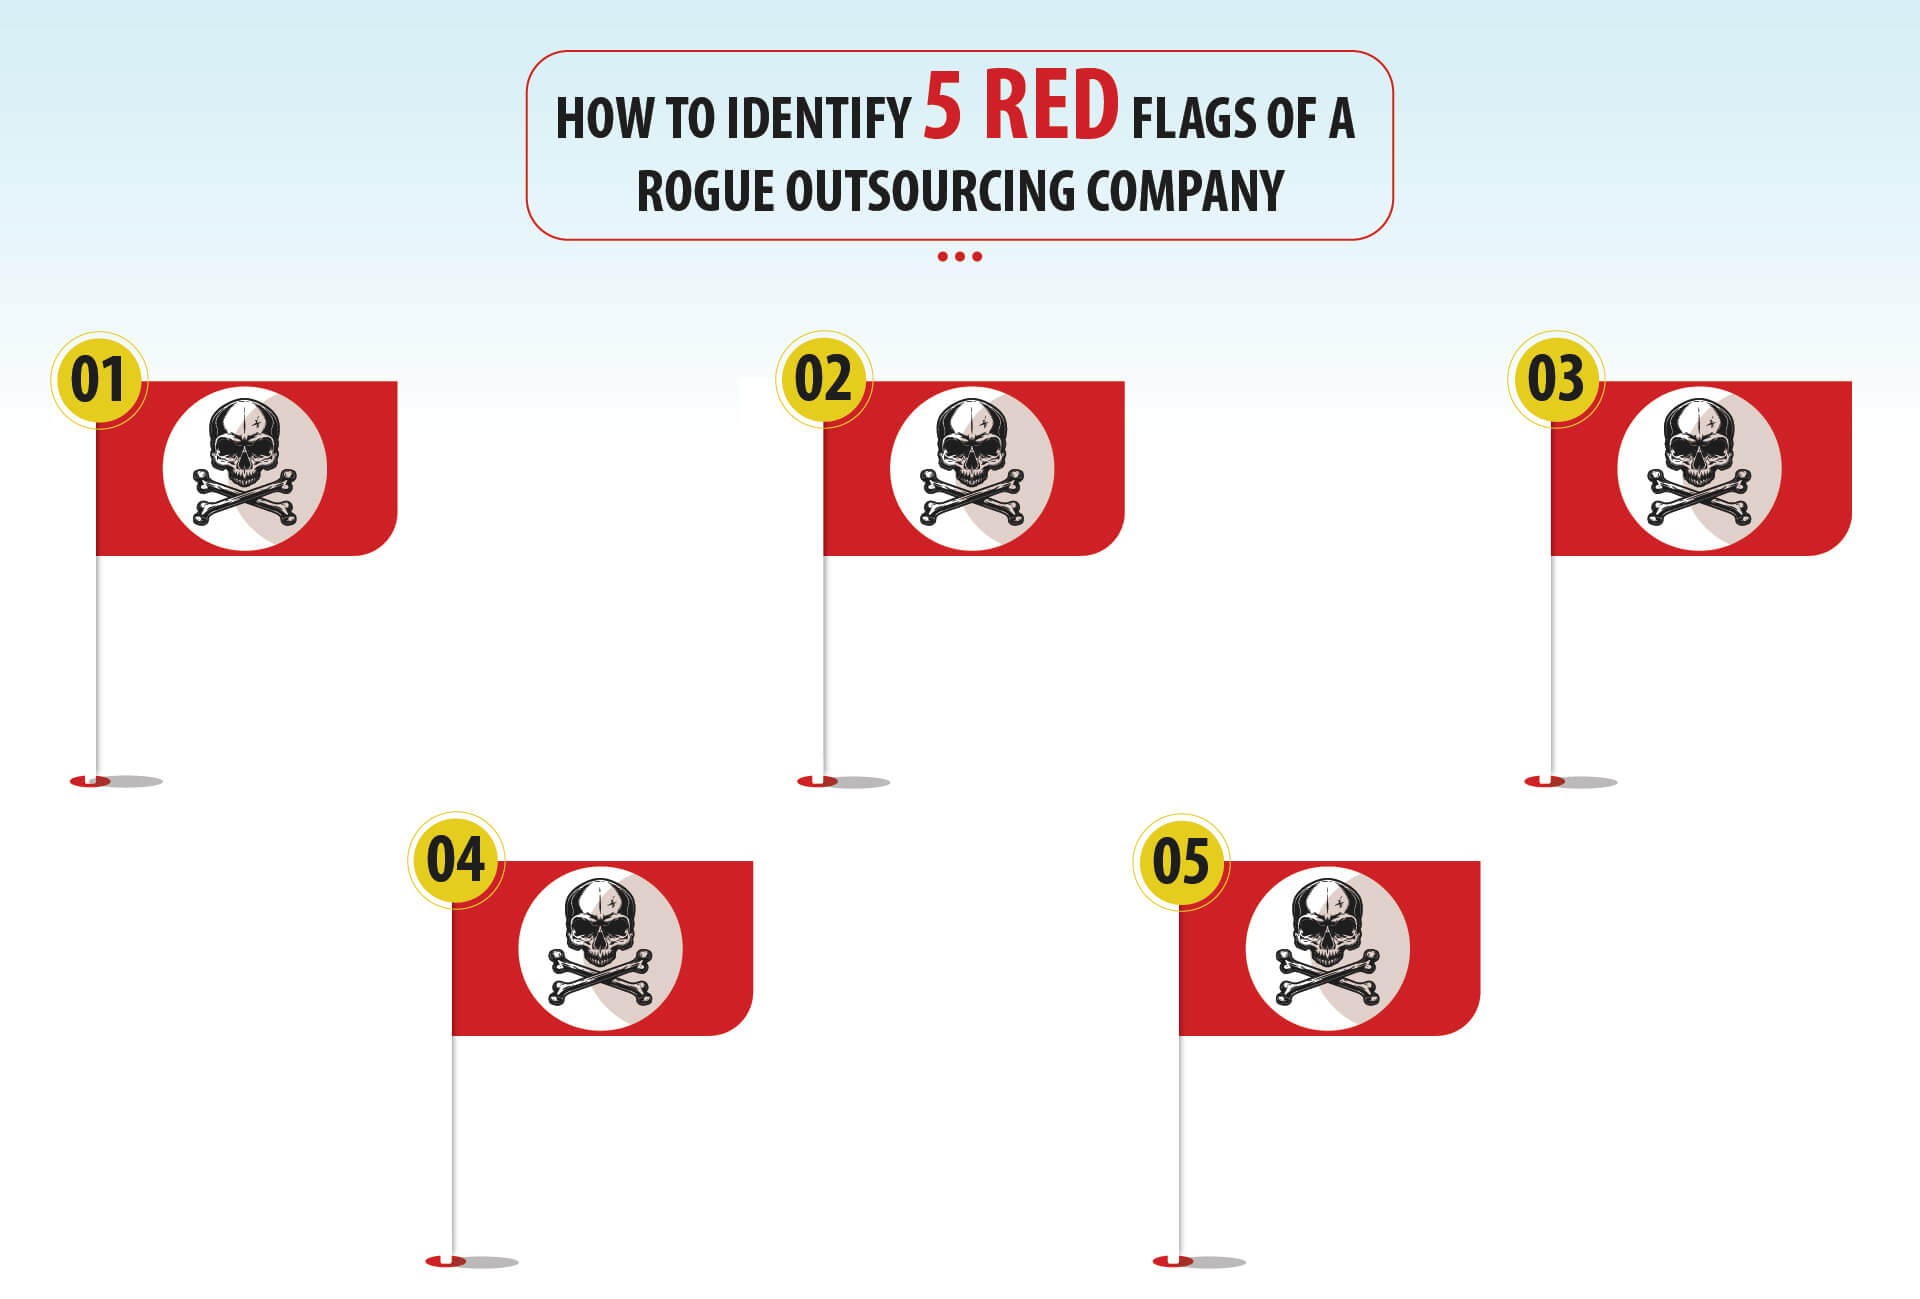 5 Red Flags of a Rogue Outsourcing Company